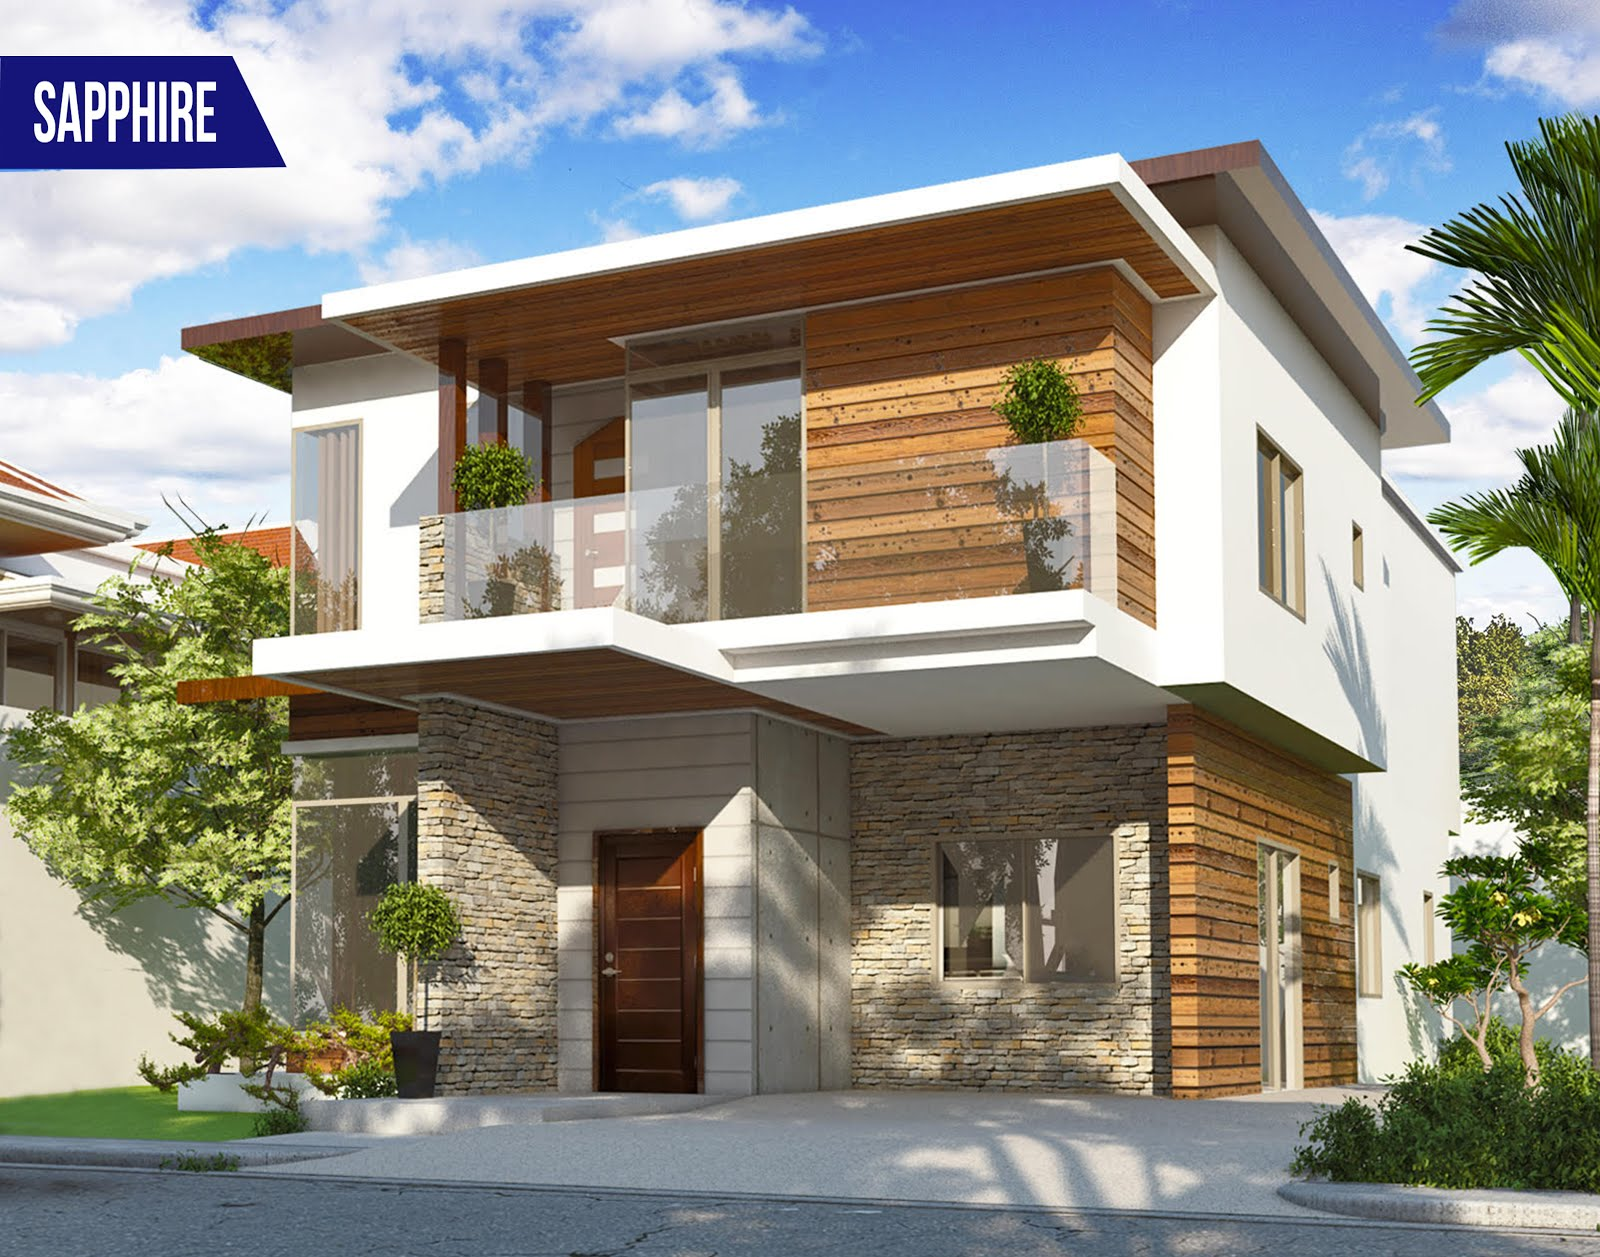 A smart philippine house builder the basics of latest for Latest house designs photos